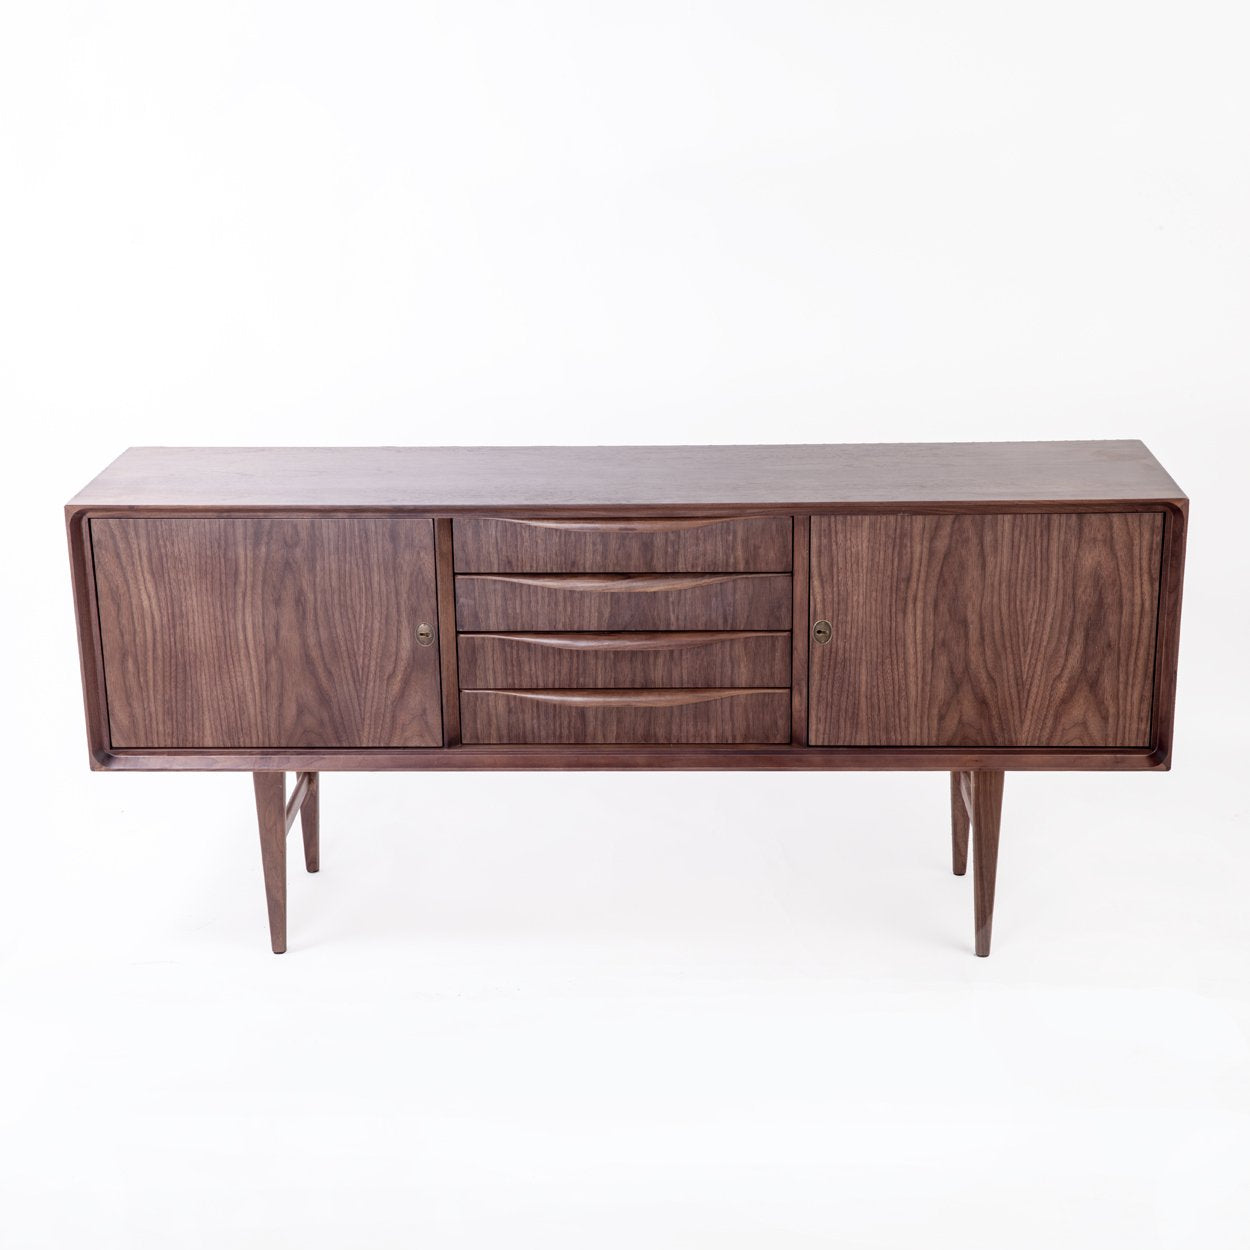 [FES8059WALNUT] The Dustin Sideboard